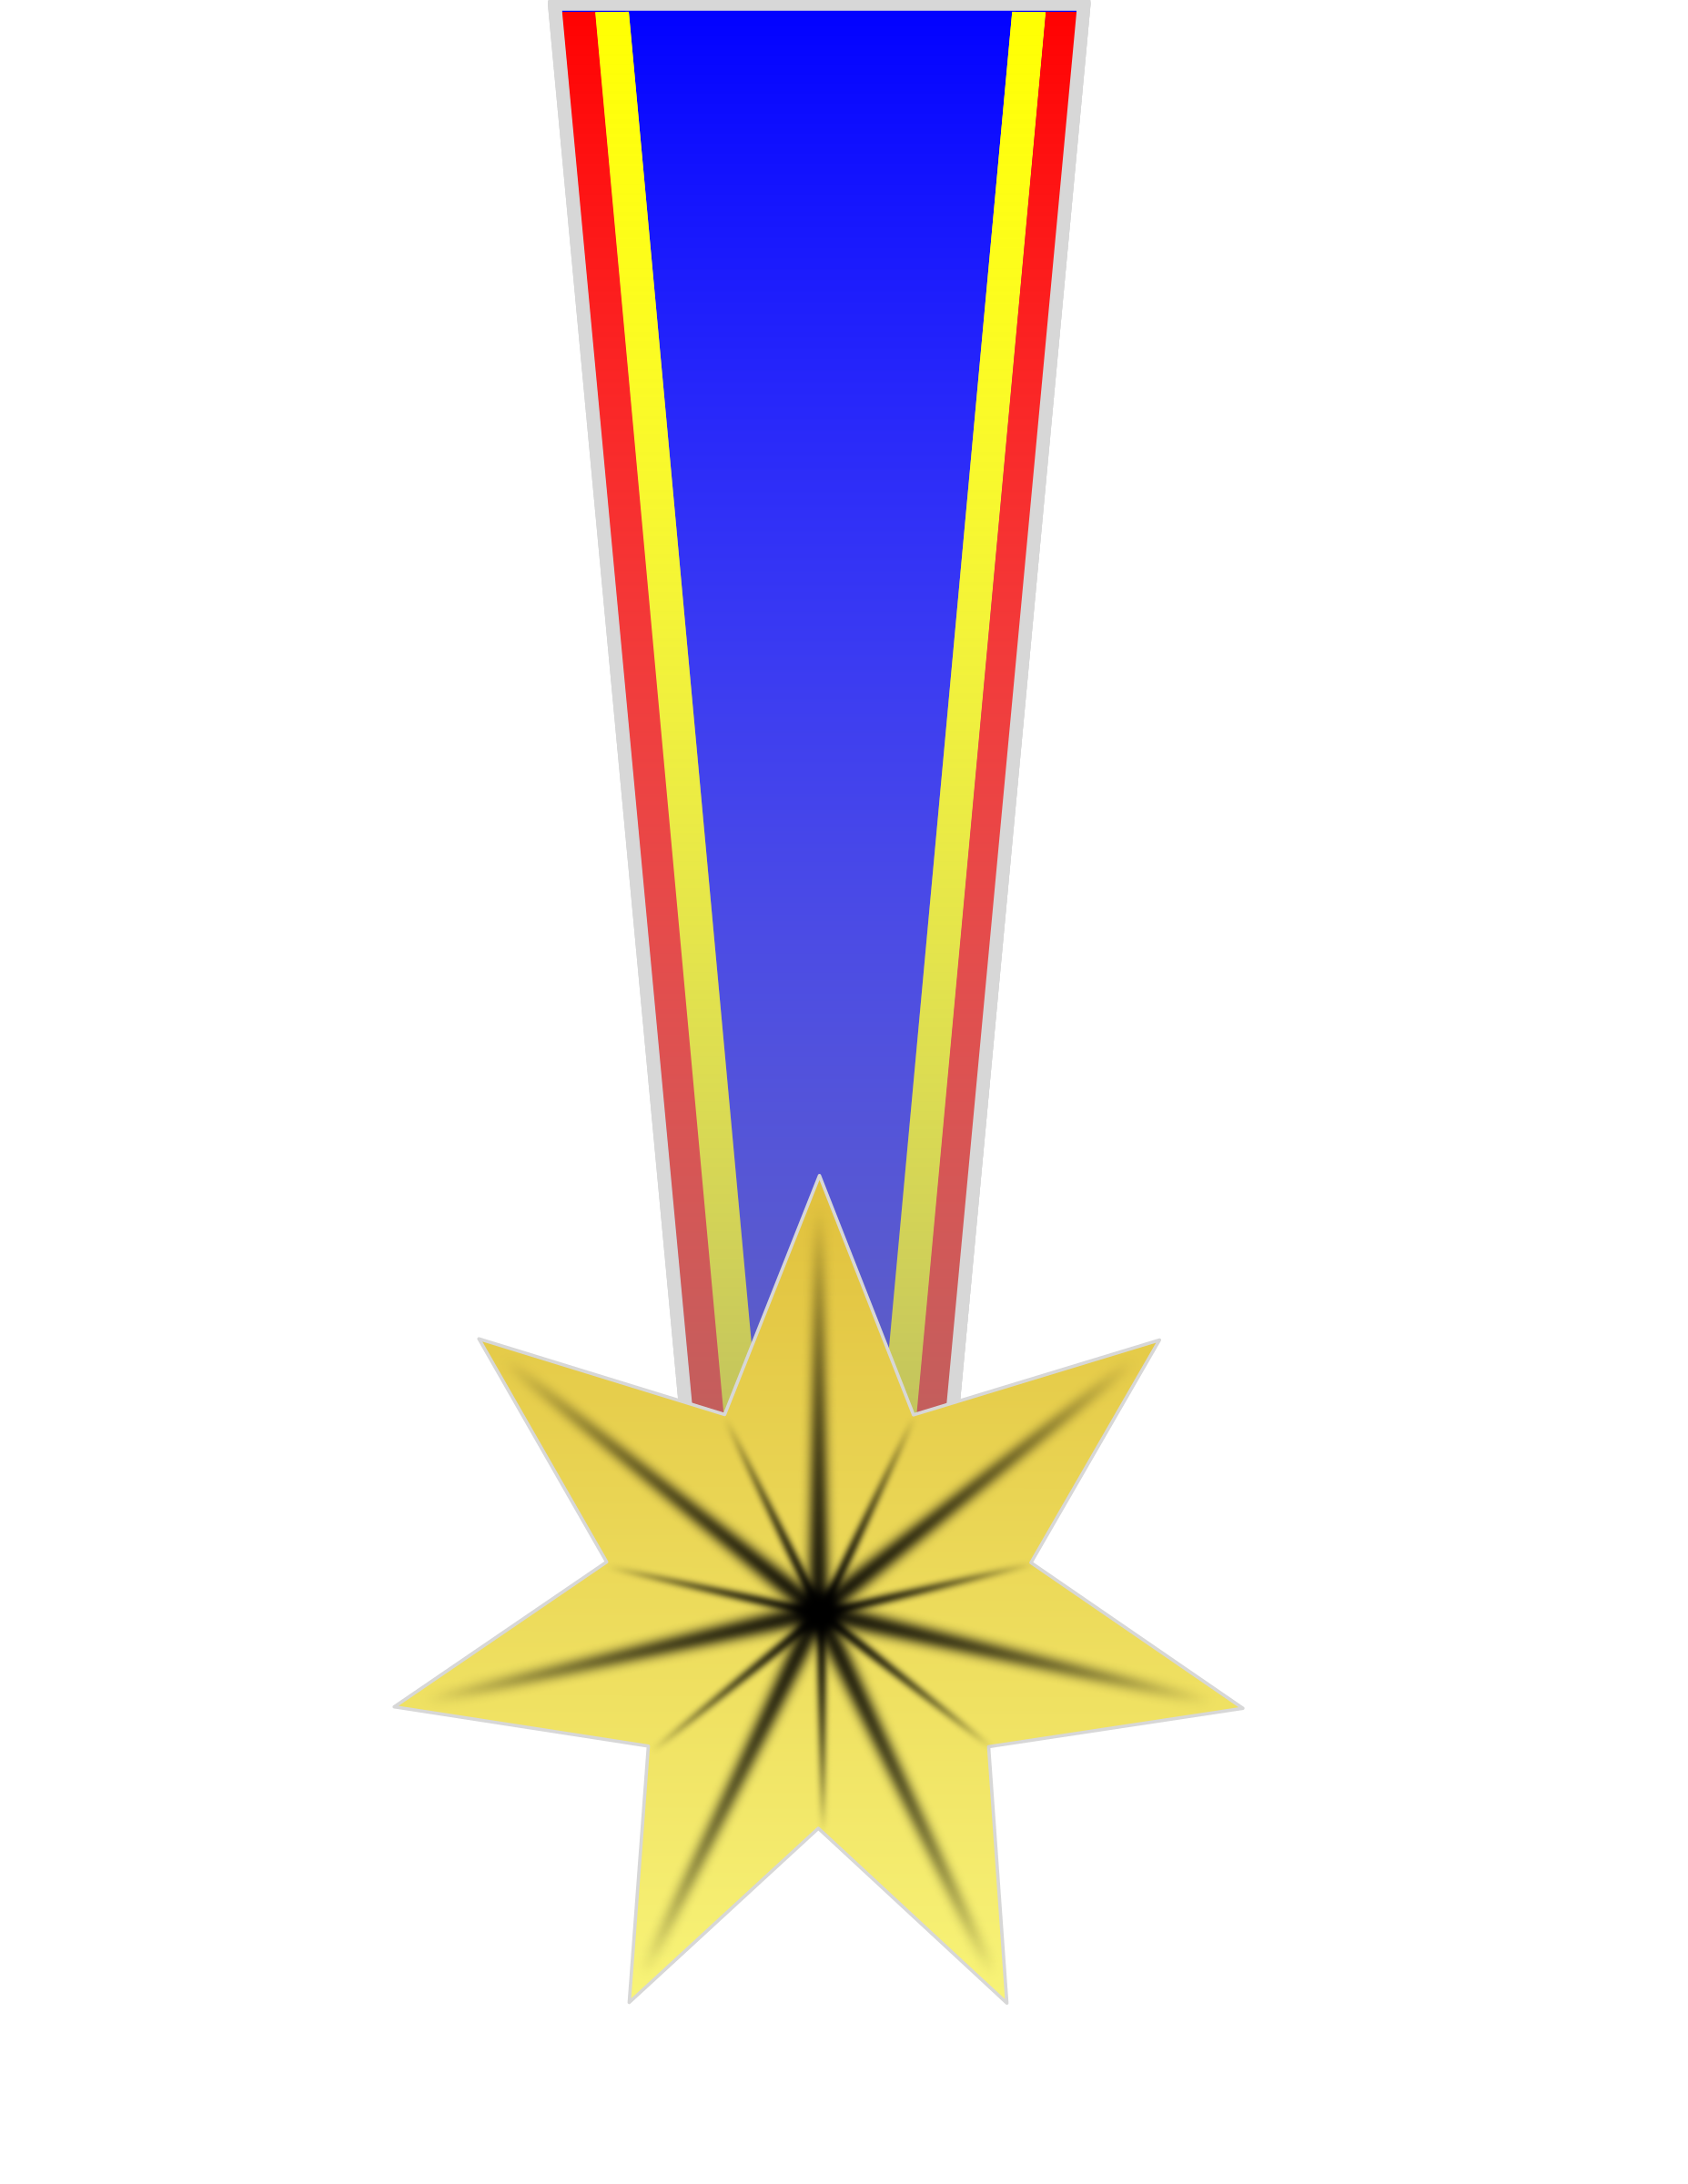 Medal by Ehecatl1138